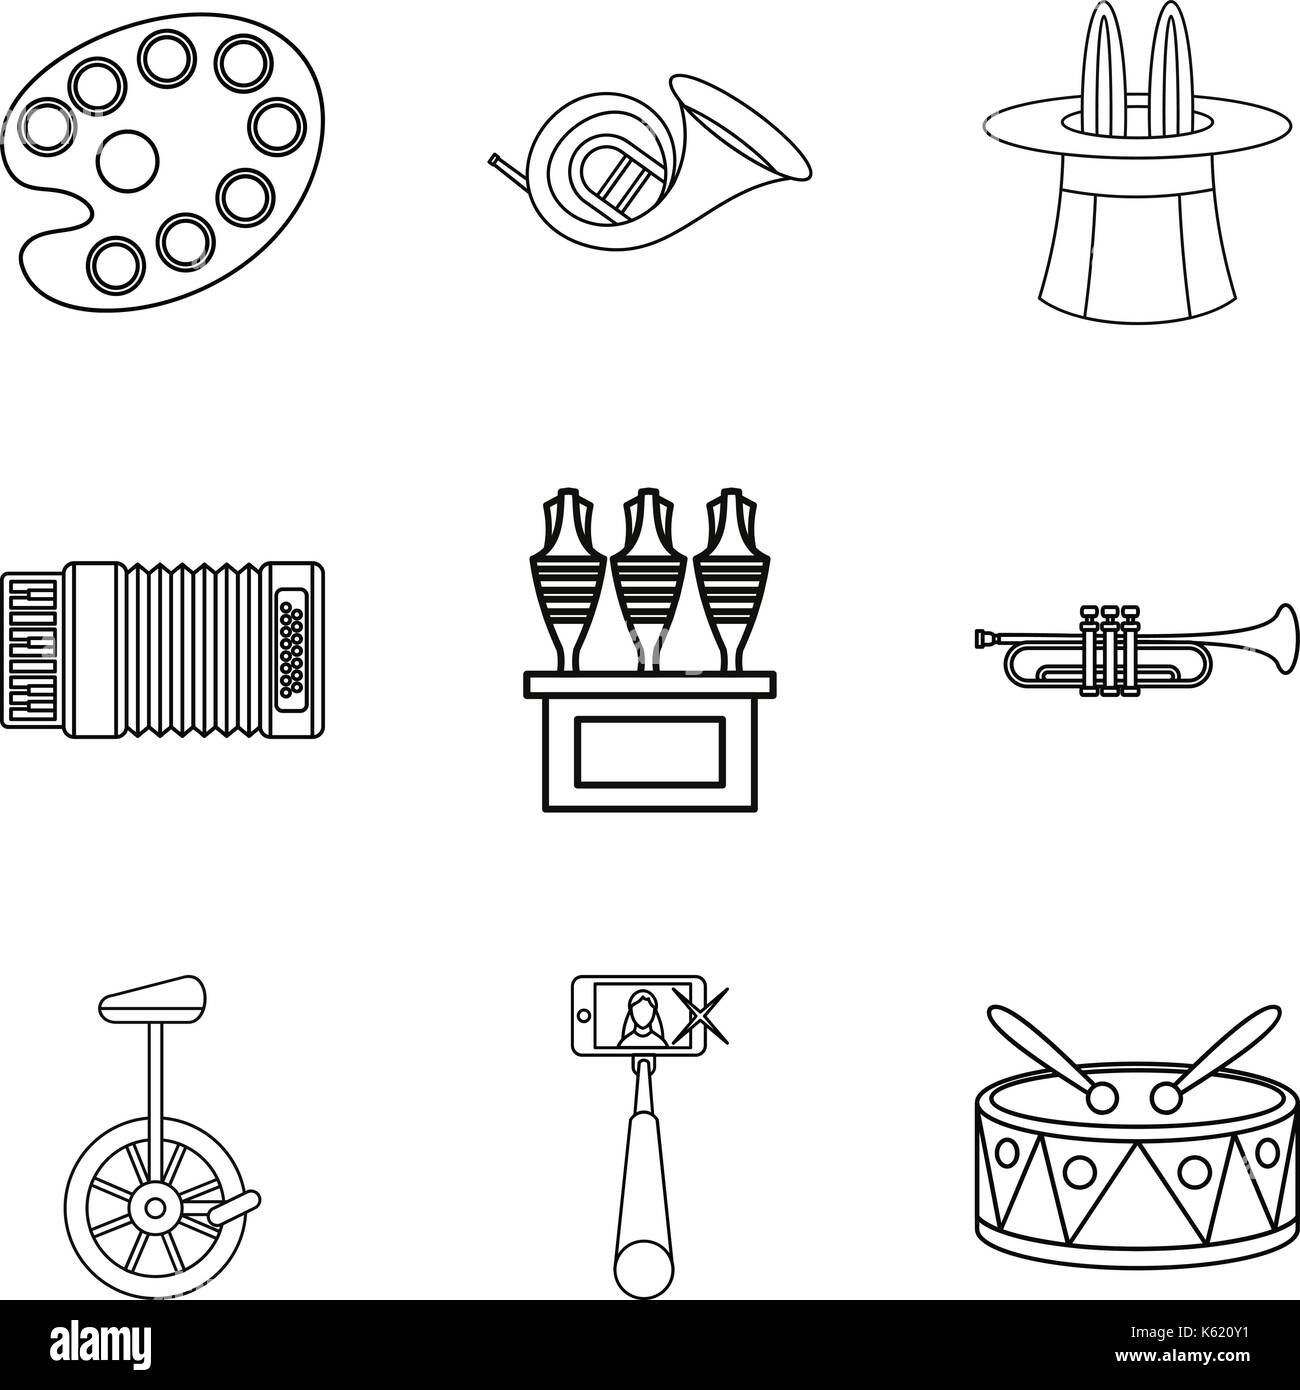 Street circus icons set, outline style - Stock Vector